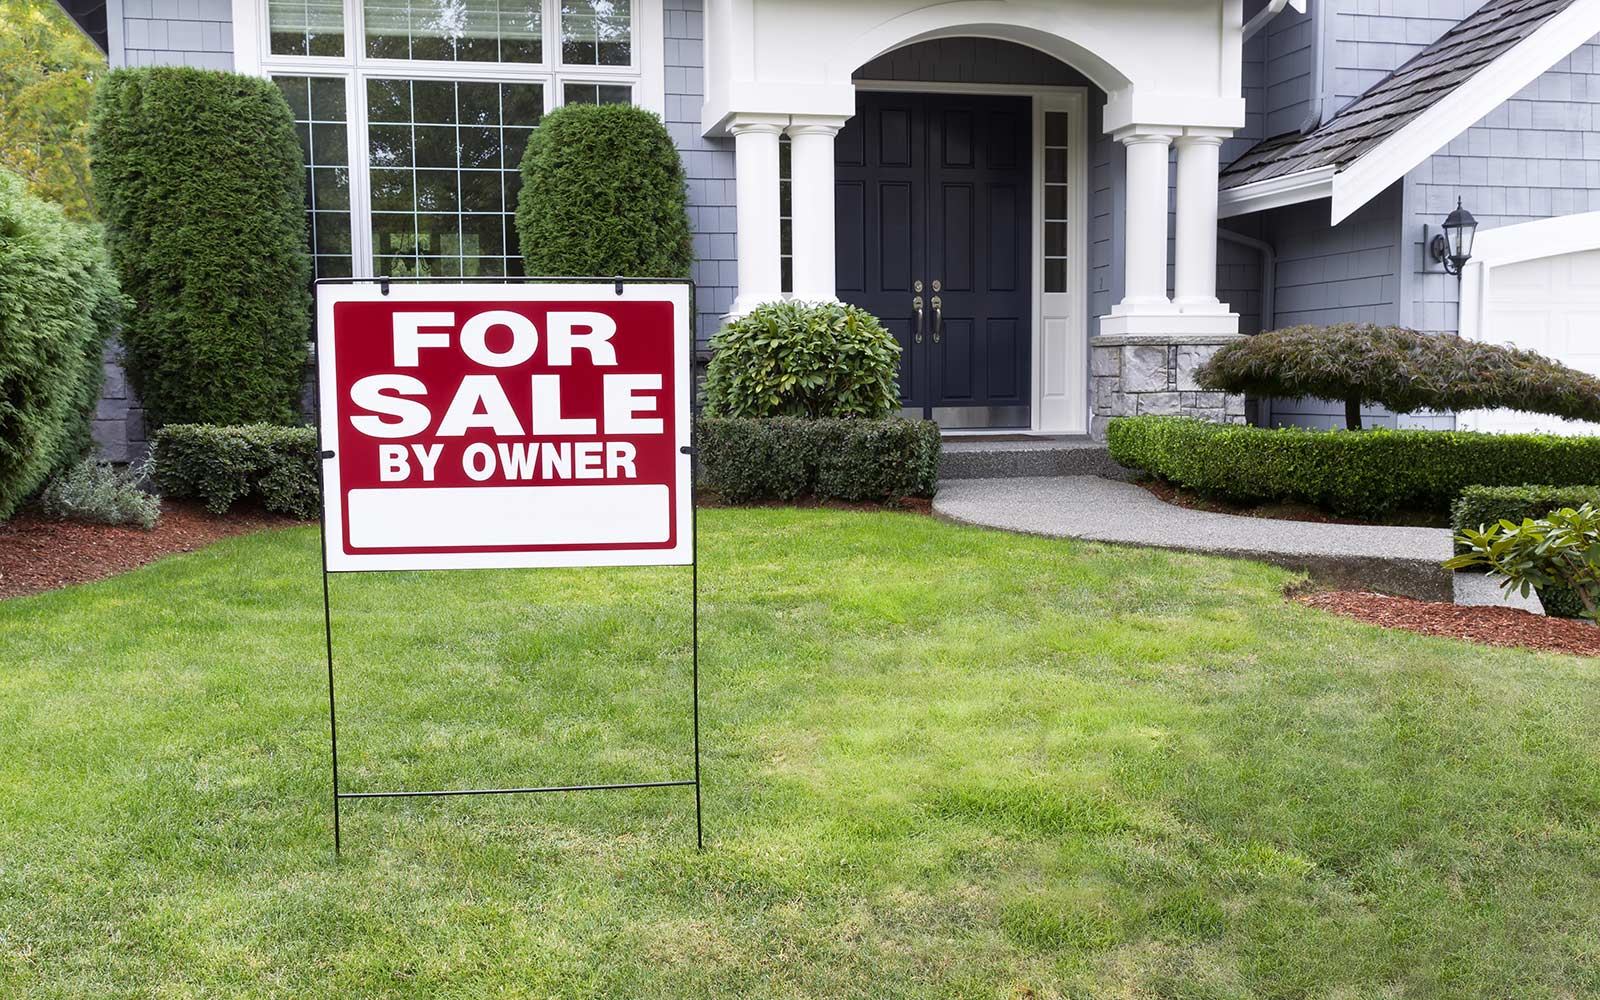 So It's Time to SELL the House